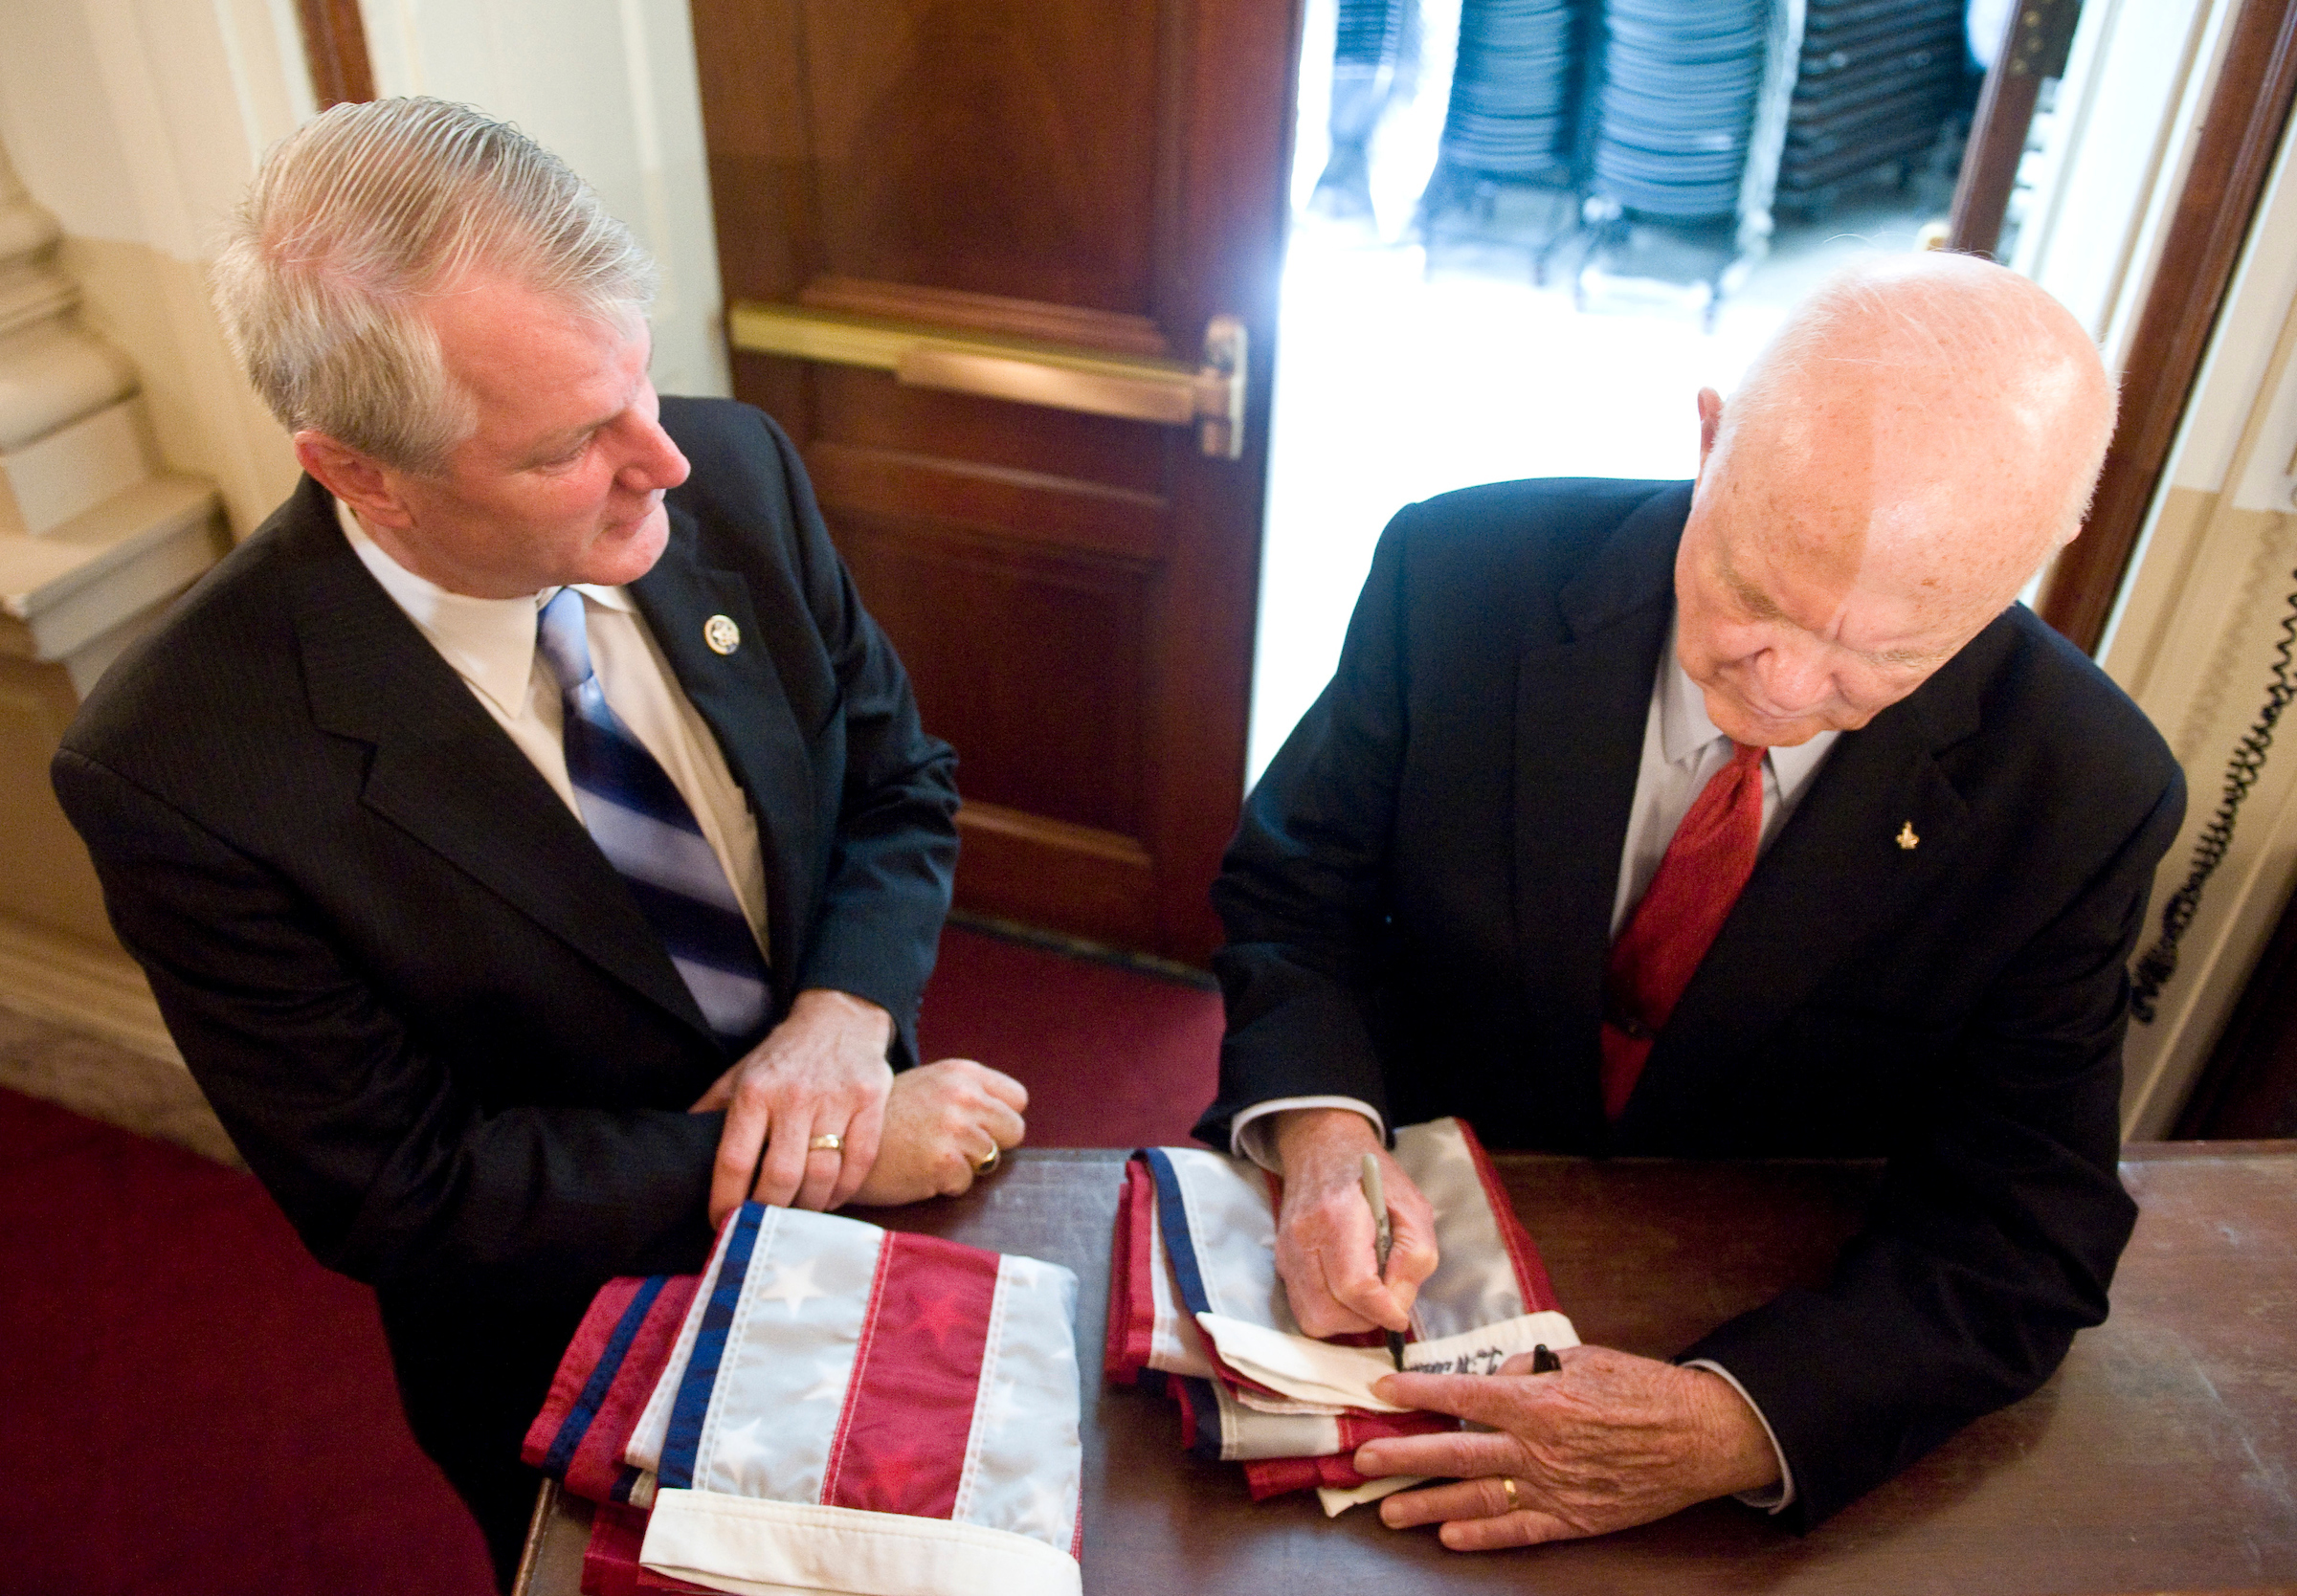 July 21, 2009: Rep. Brian Baird, D-Wash., left, watches as astronaut and former Sen. John Glenn, D-Ohio, signs two flags for Baird's twin sons during the tribute event to the Apollo 11 astronauts celebrating the 40th anniversary of the first moon landing on. (CQ Roll Call File Photo)